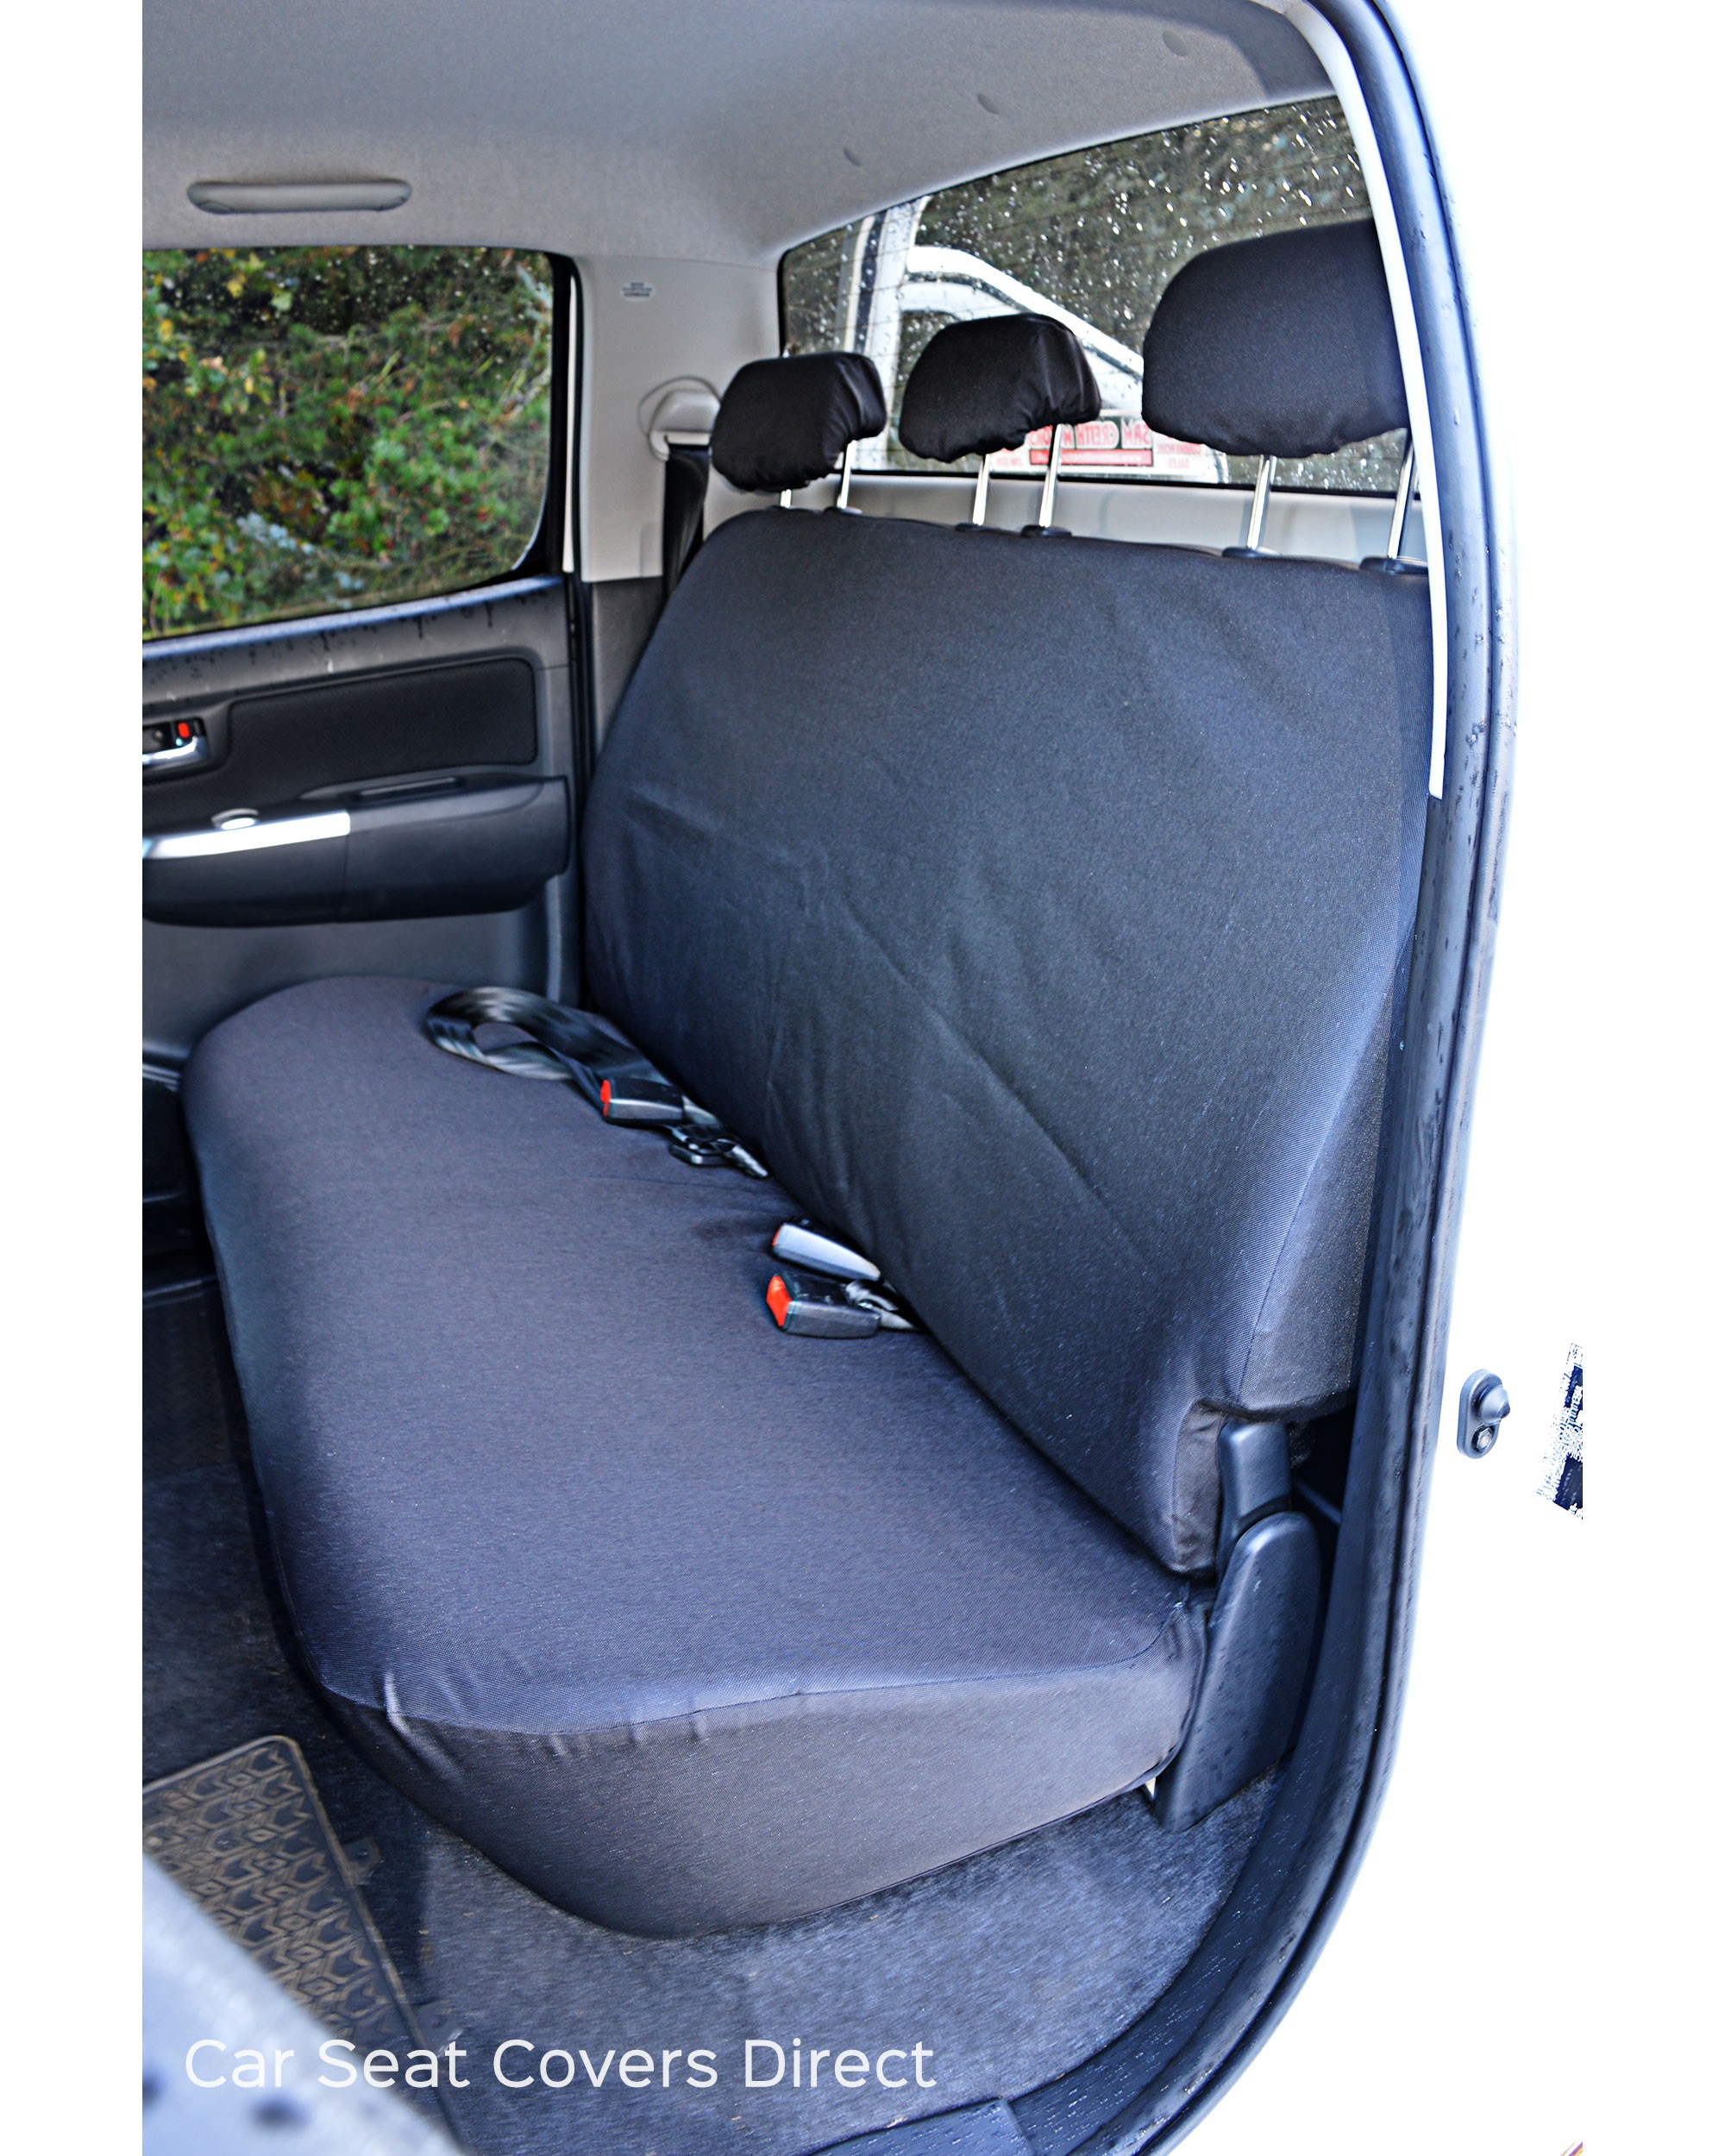 Toyota Hilux Heavy Duty Protective Seat Covers Car Seat